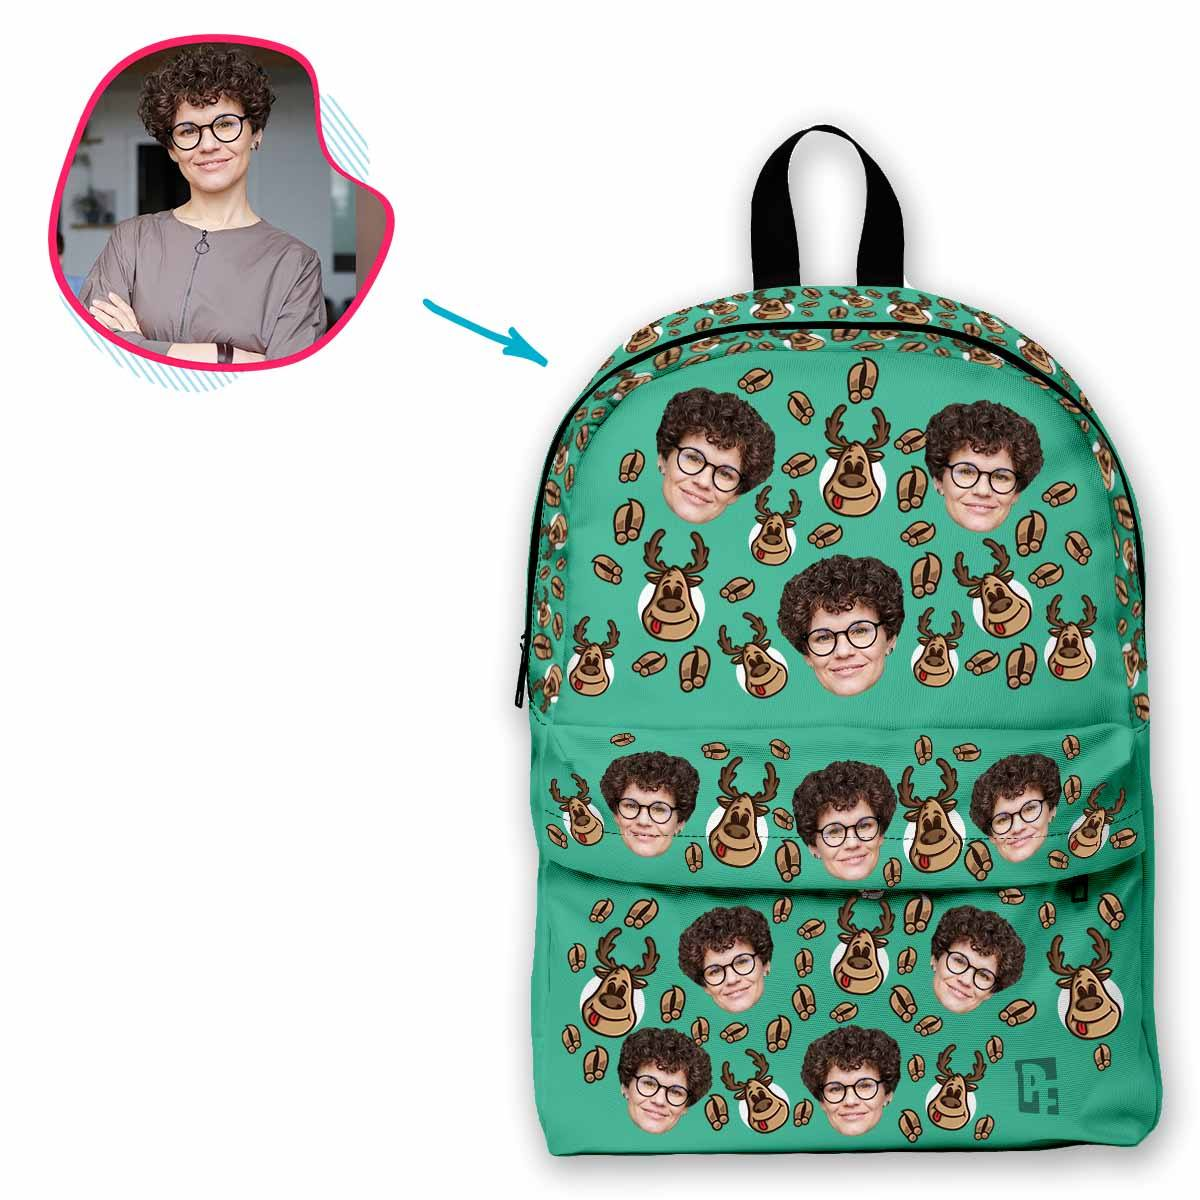 mint Deer Hunter classic backpack personalized with photo of face printed on it